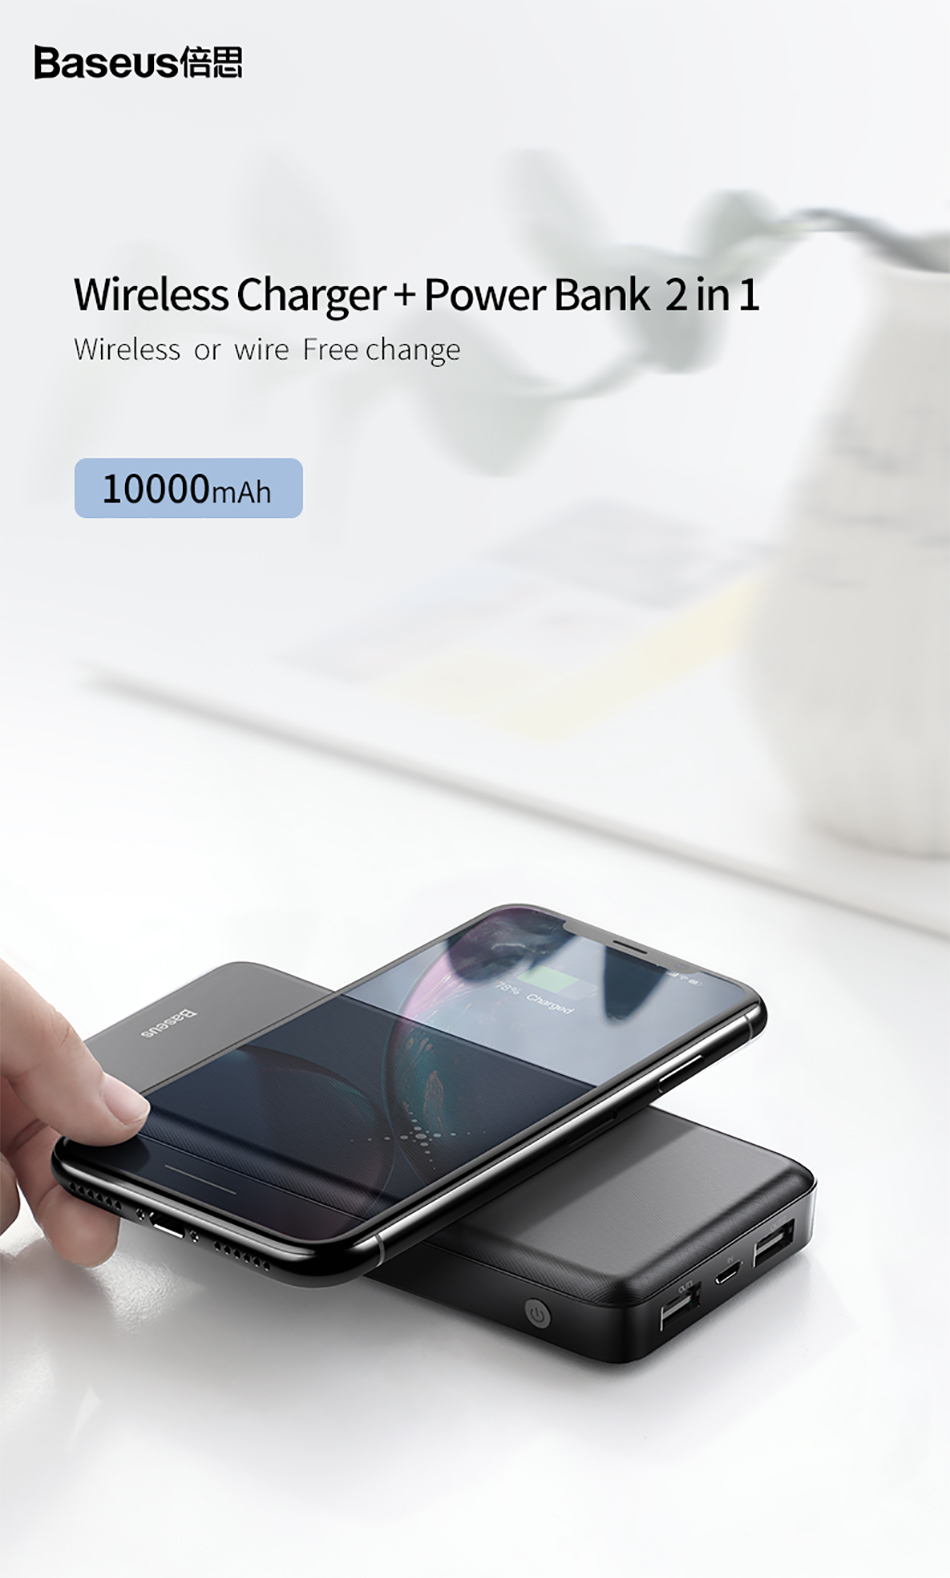 baseus m36 wireless powerbank charger 10000mah dual usb rh visiongadgetry com